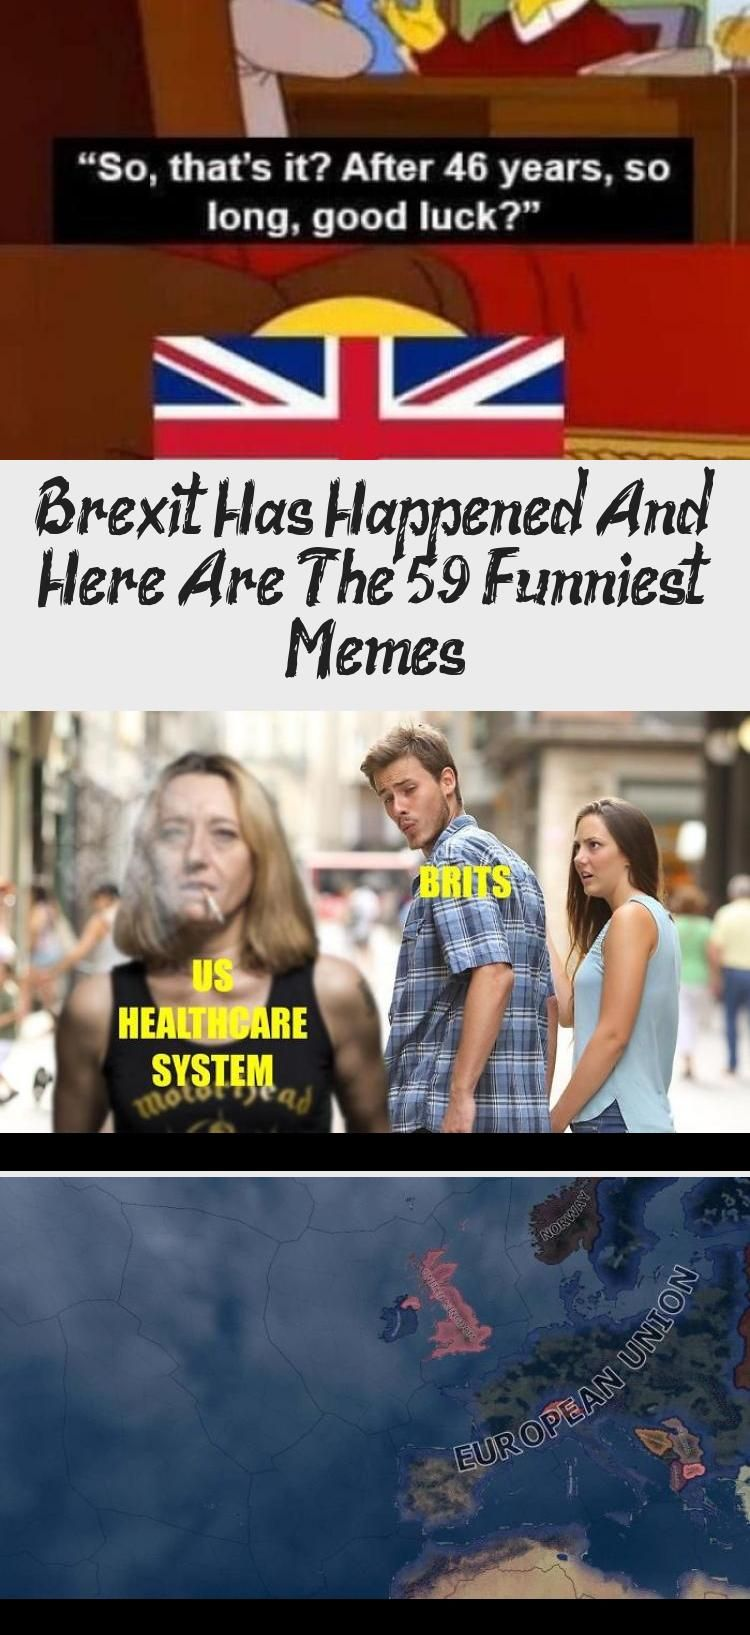 Brexit Has Happened And Here Are The 59 Funniest Memes In 2020